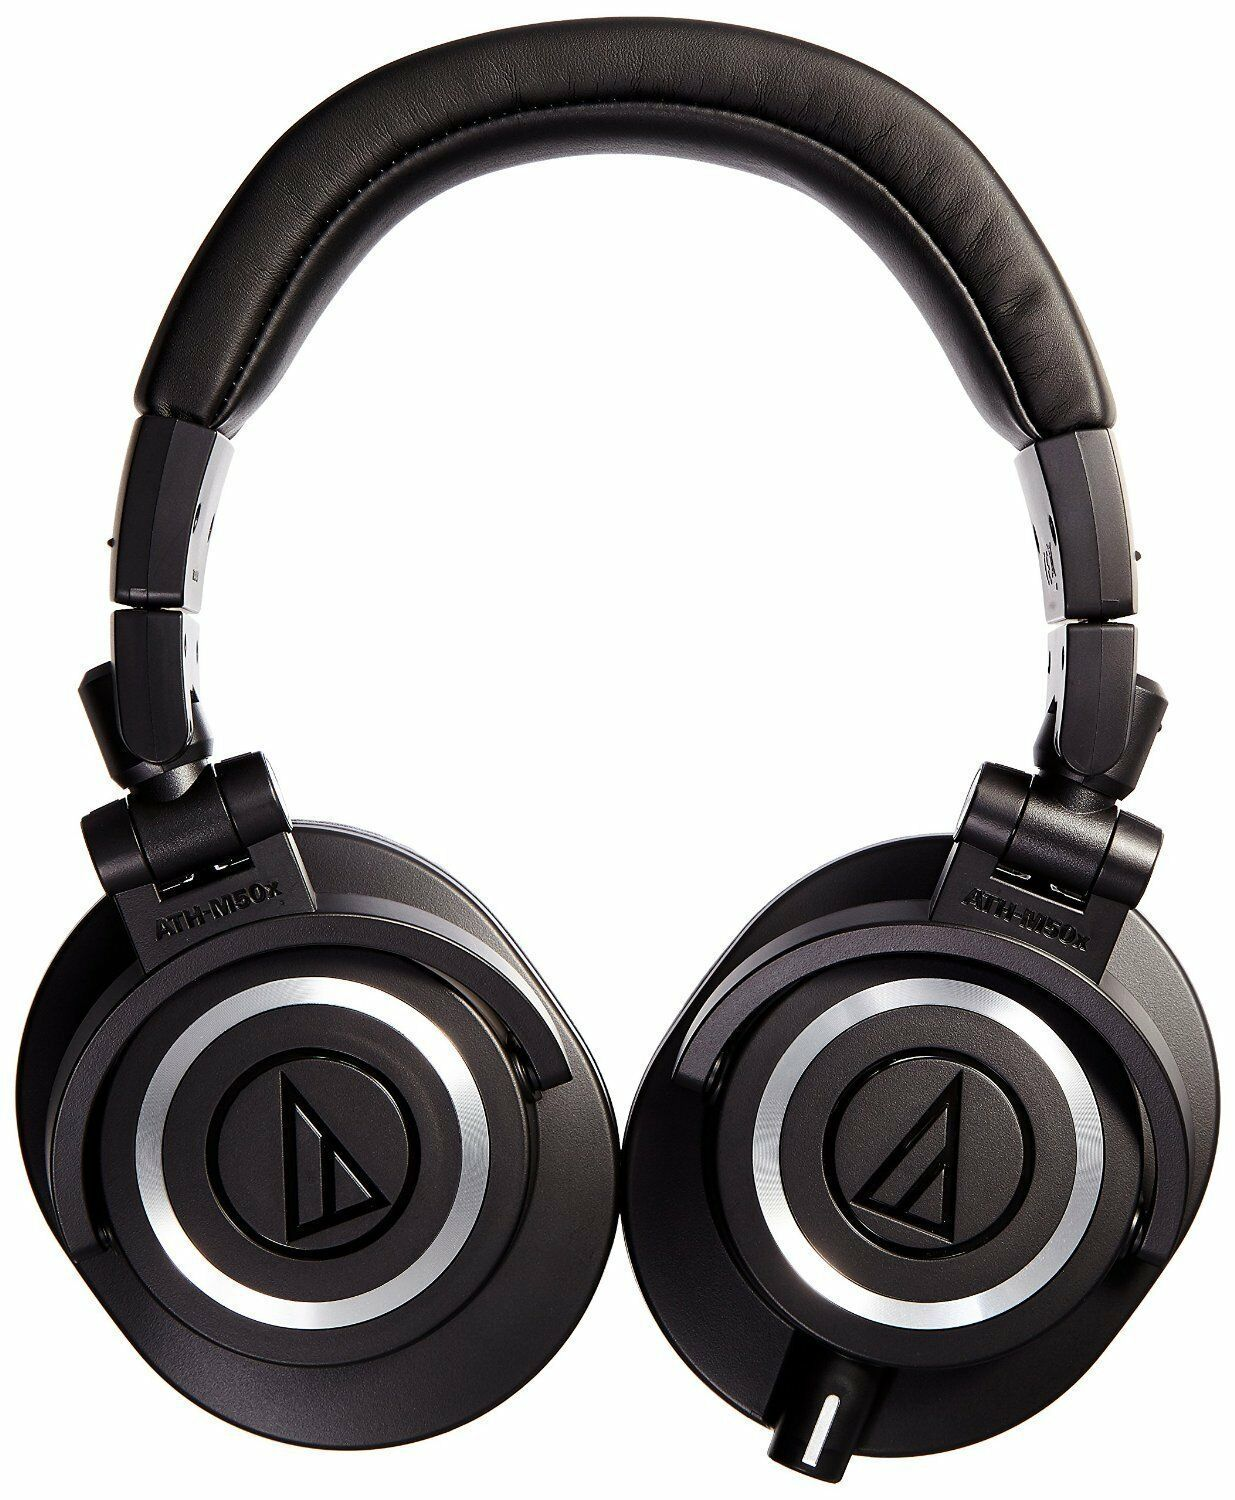 a82f178ddce Audio-Technica ATH-M50x Over the Ear Headphones - Black for sale ...